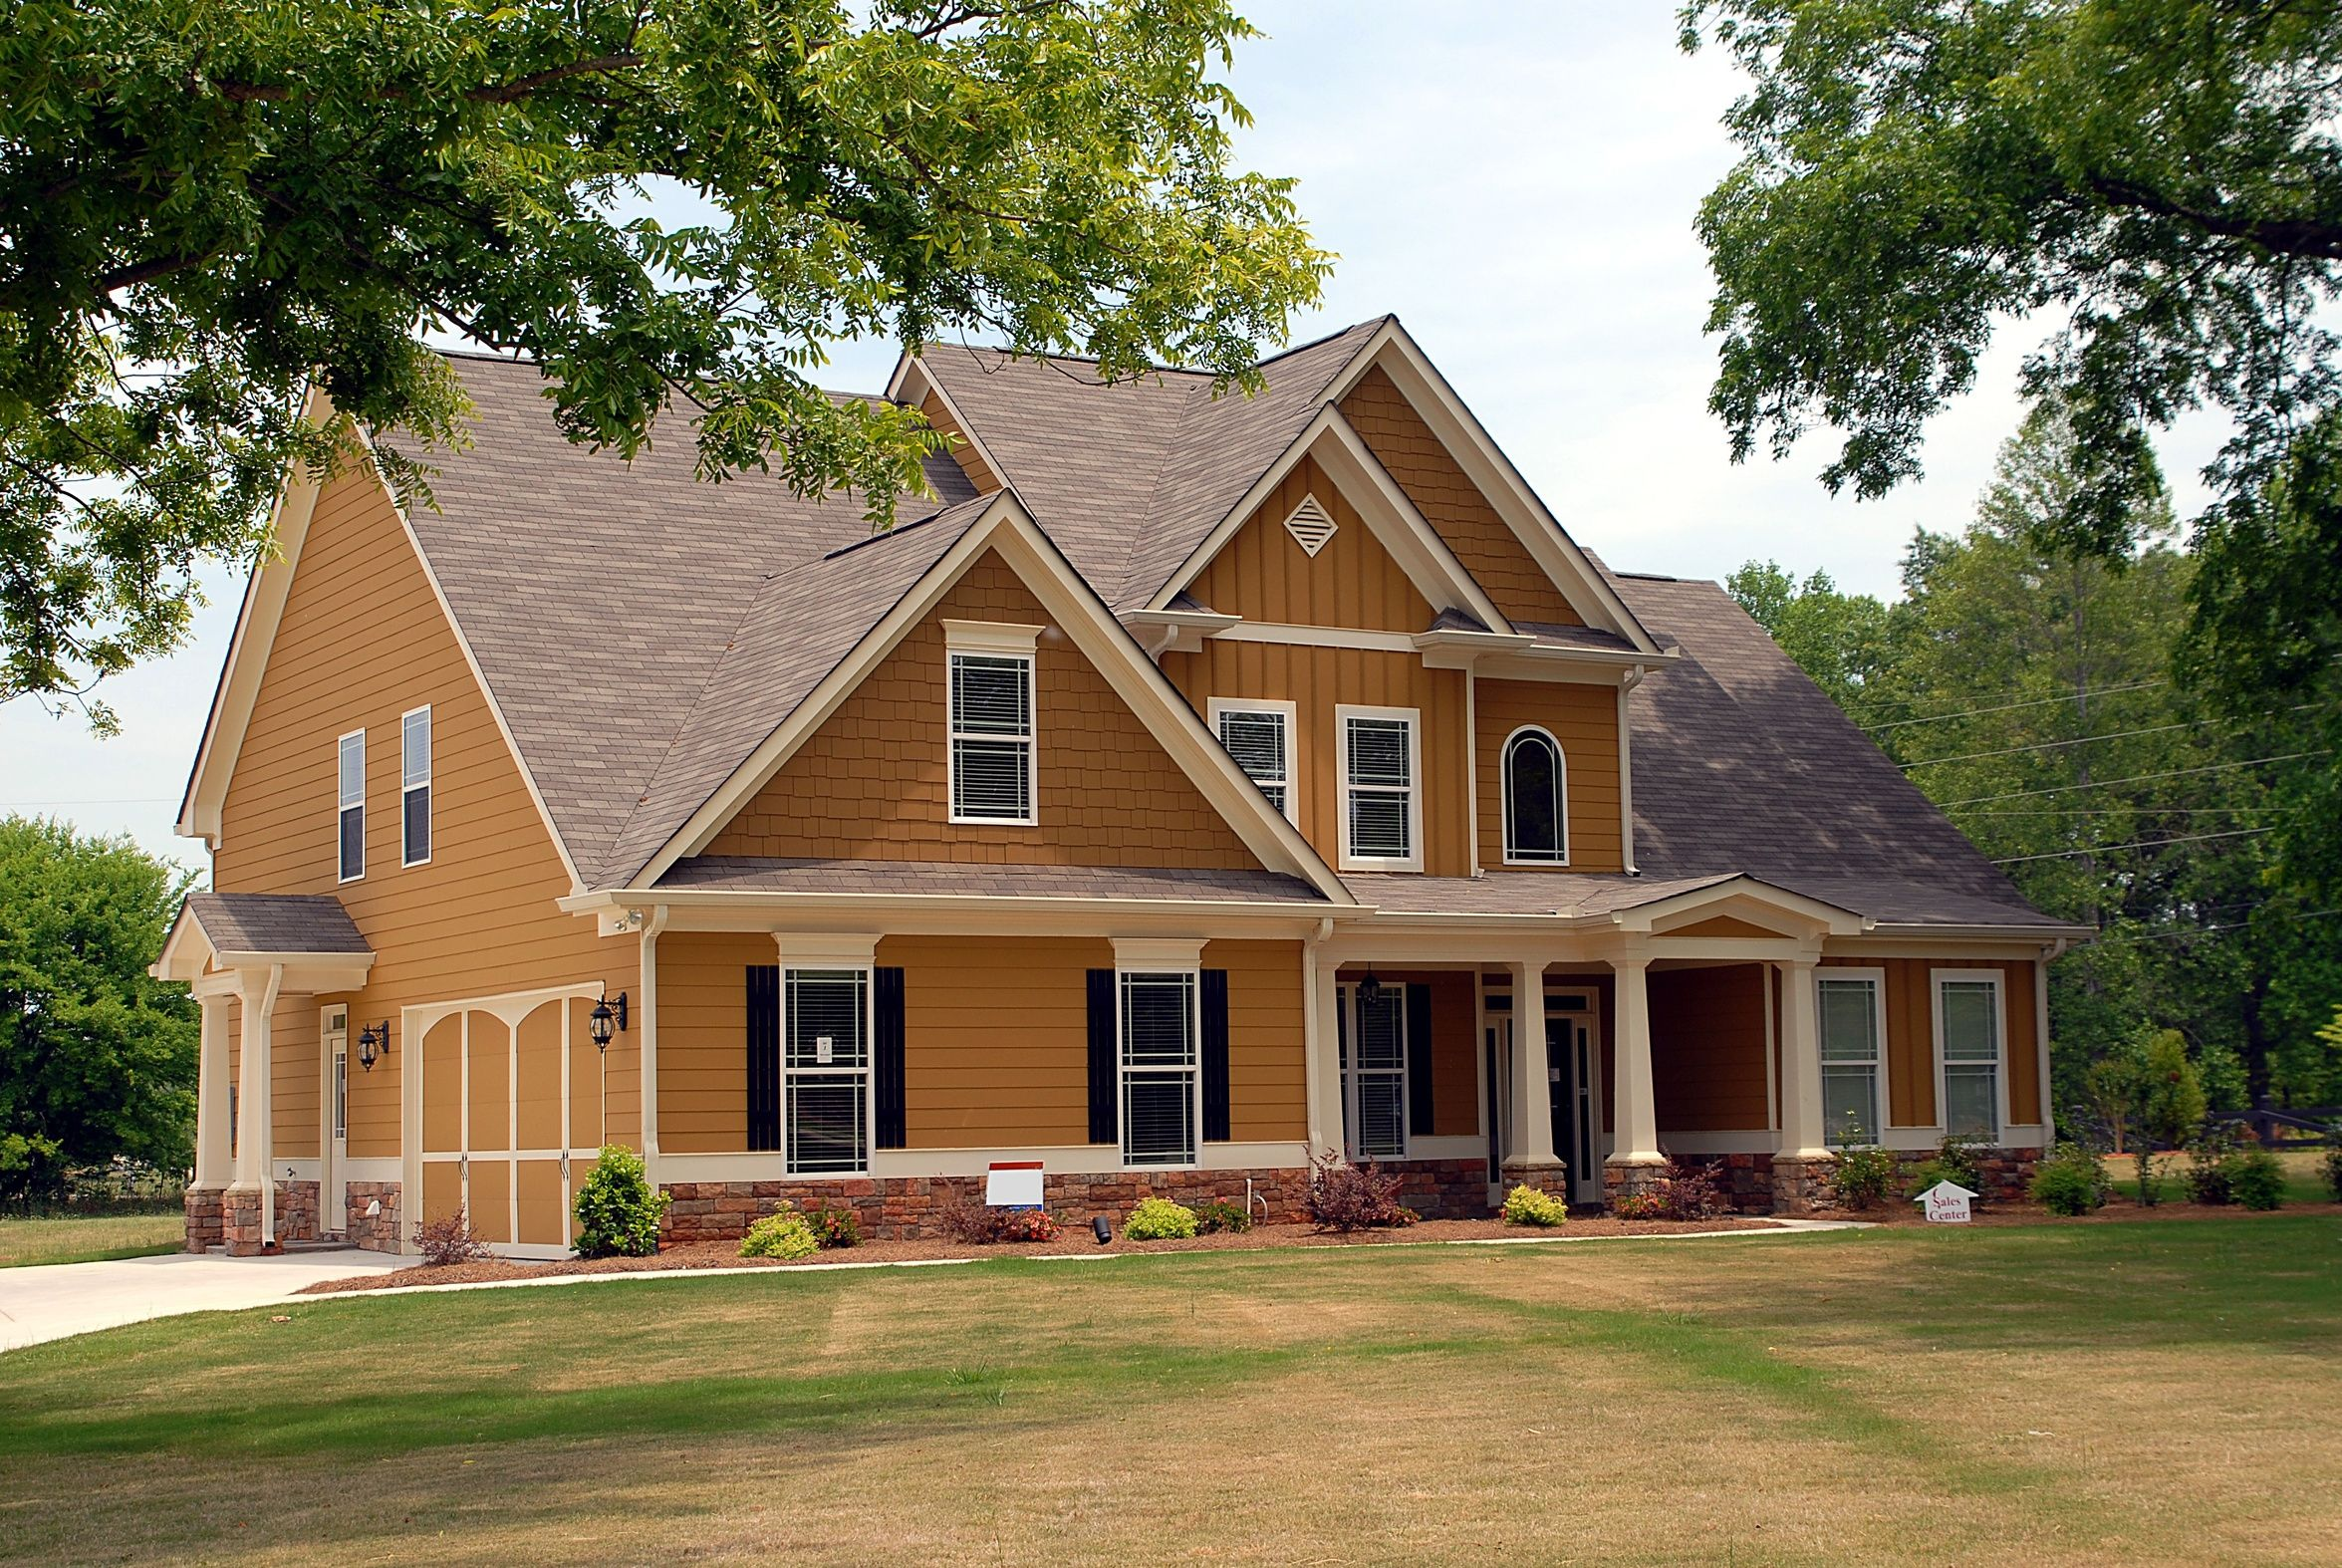 exterior paint color ideas with design color brown interior design giesendesign download